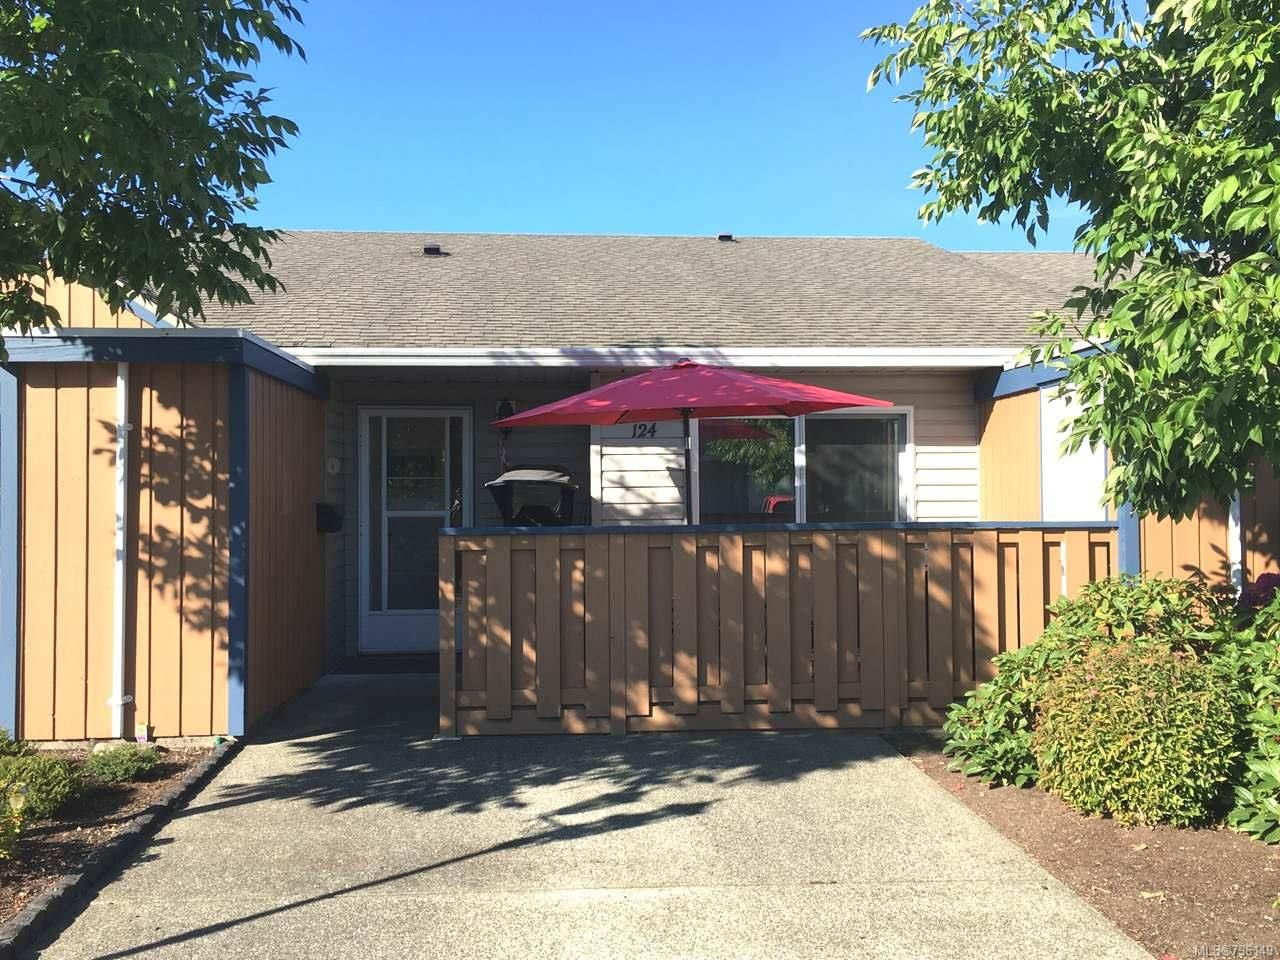 Main Photo: 124 2191 Murrelet Dr in COMOX: CV Comox (Town of) Row/Townhouse for sale (Comox Valley)  : MLS®# 796149